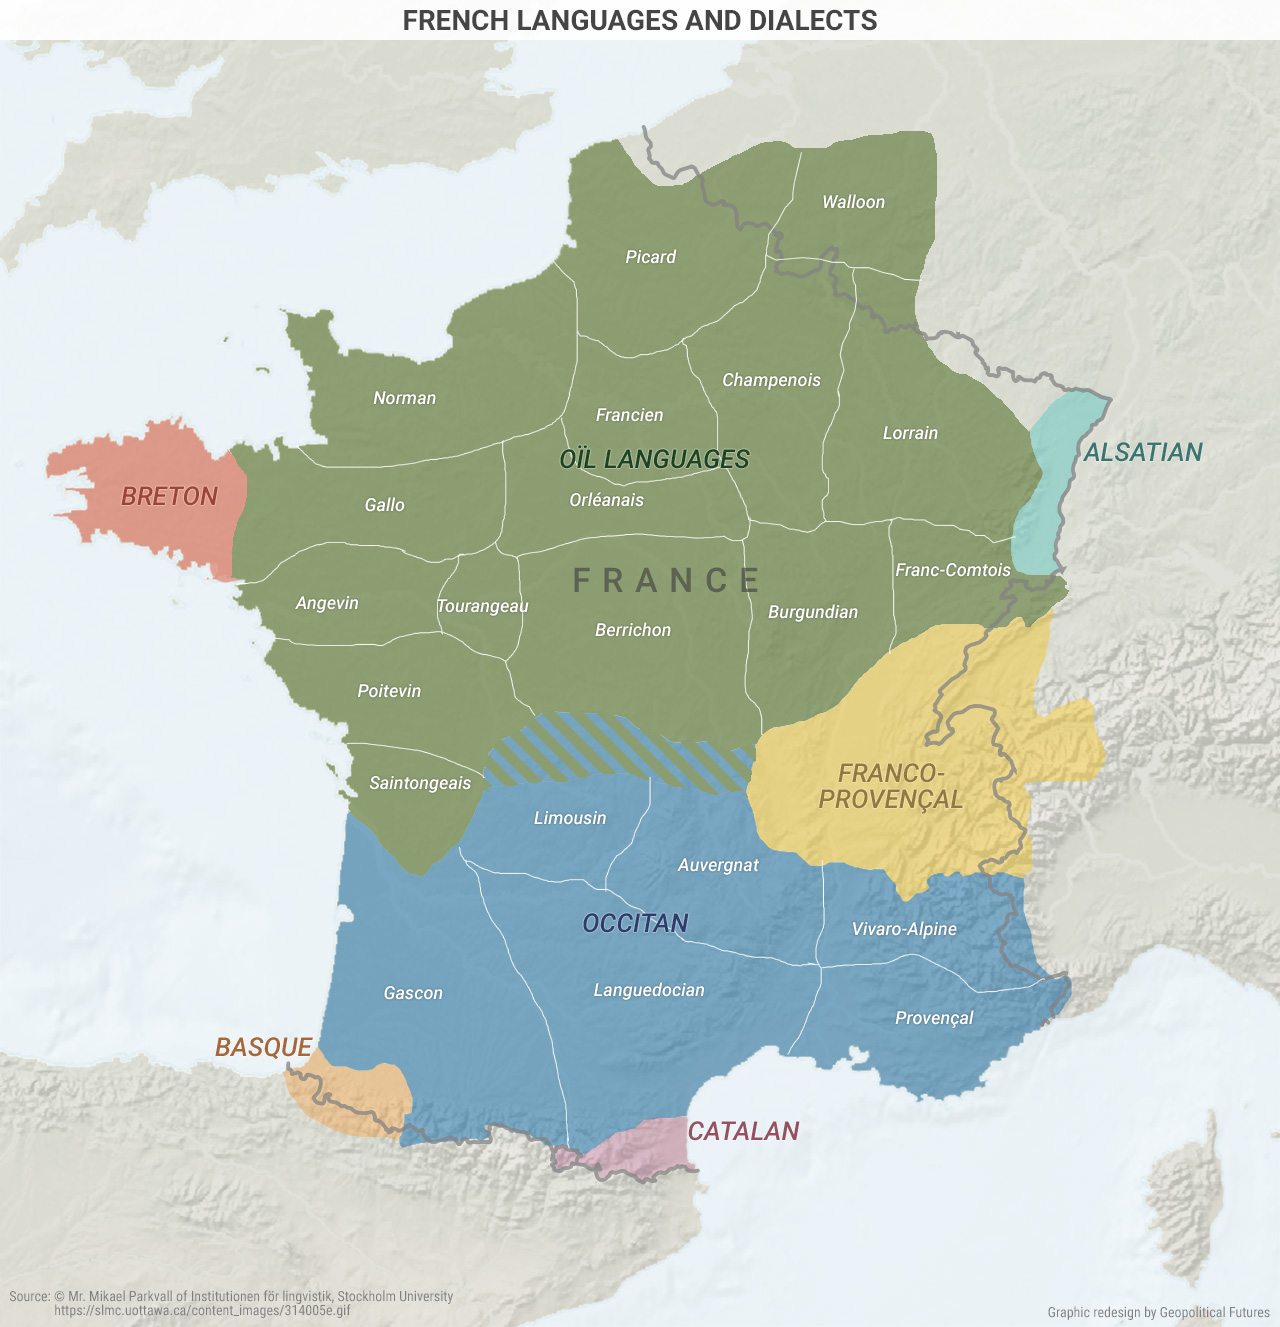 French Languages And Dialects